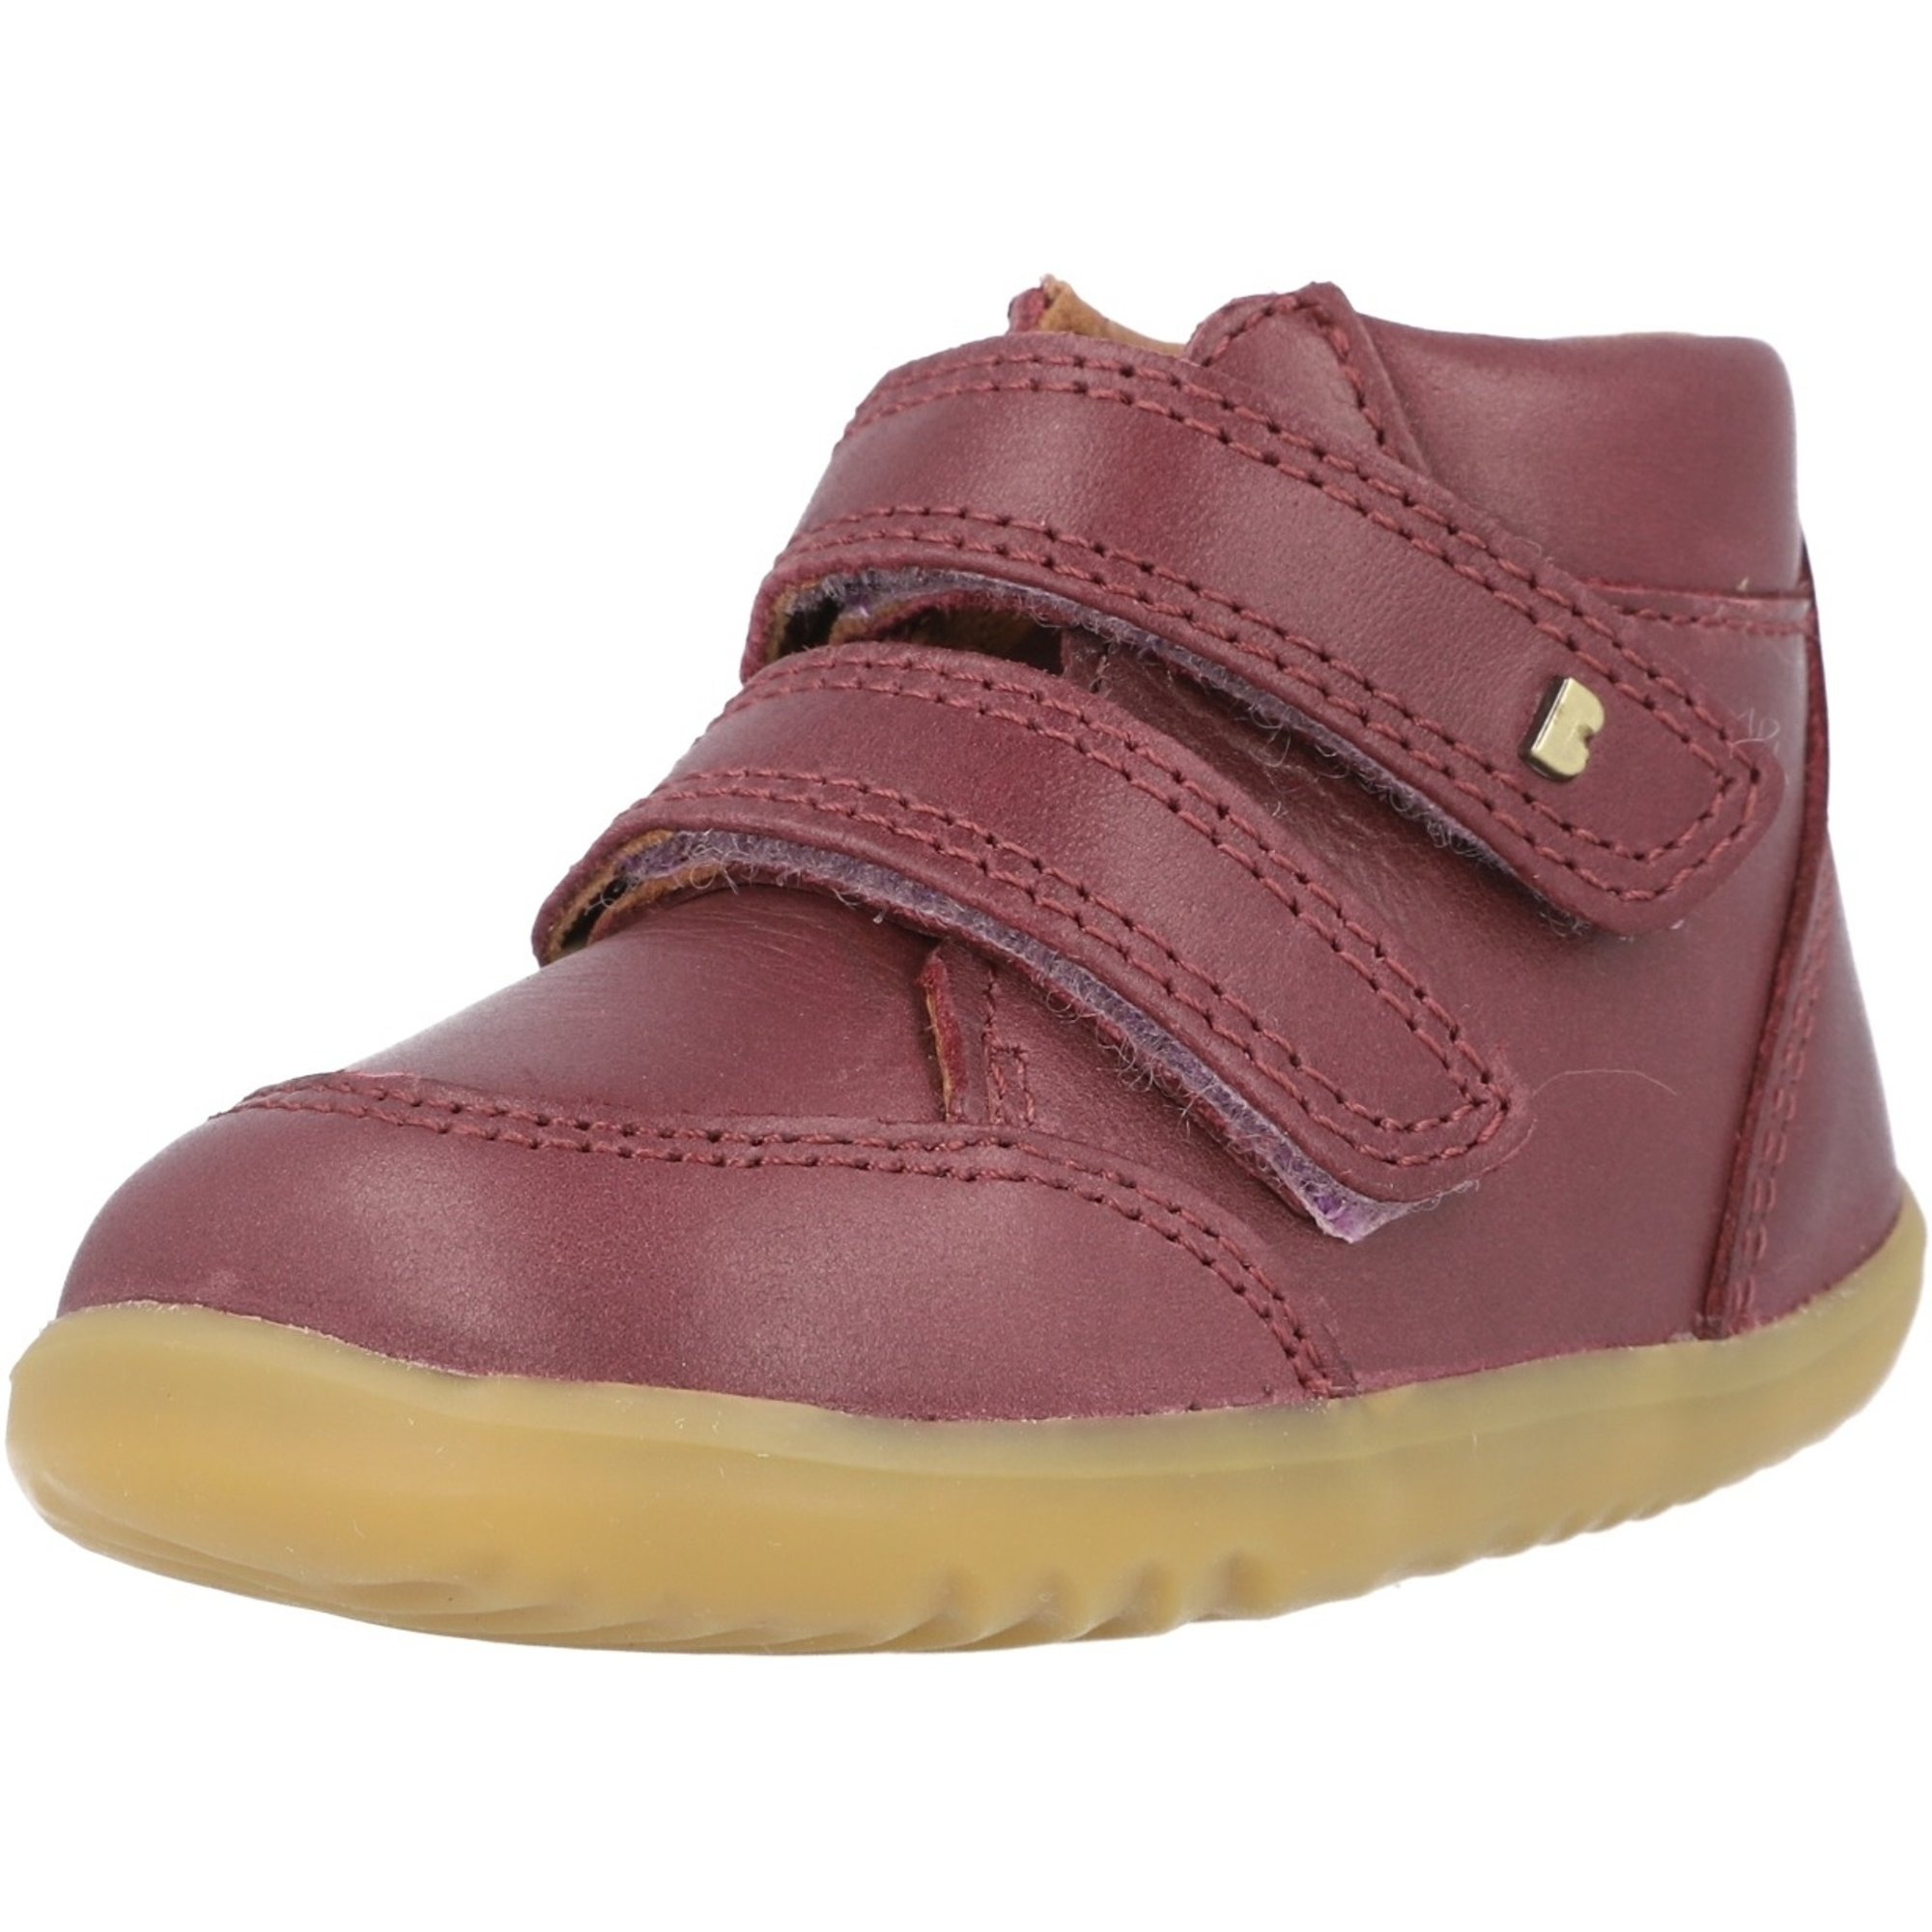 Bobux Step Up Timber Plum Quickdry Vintage-Look Leather